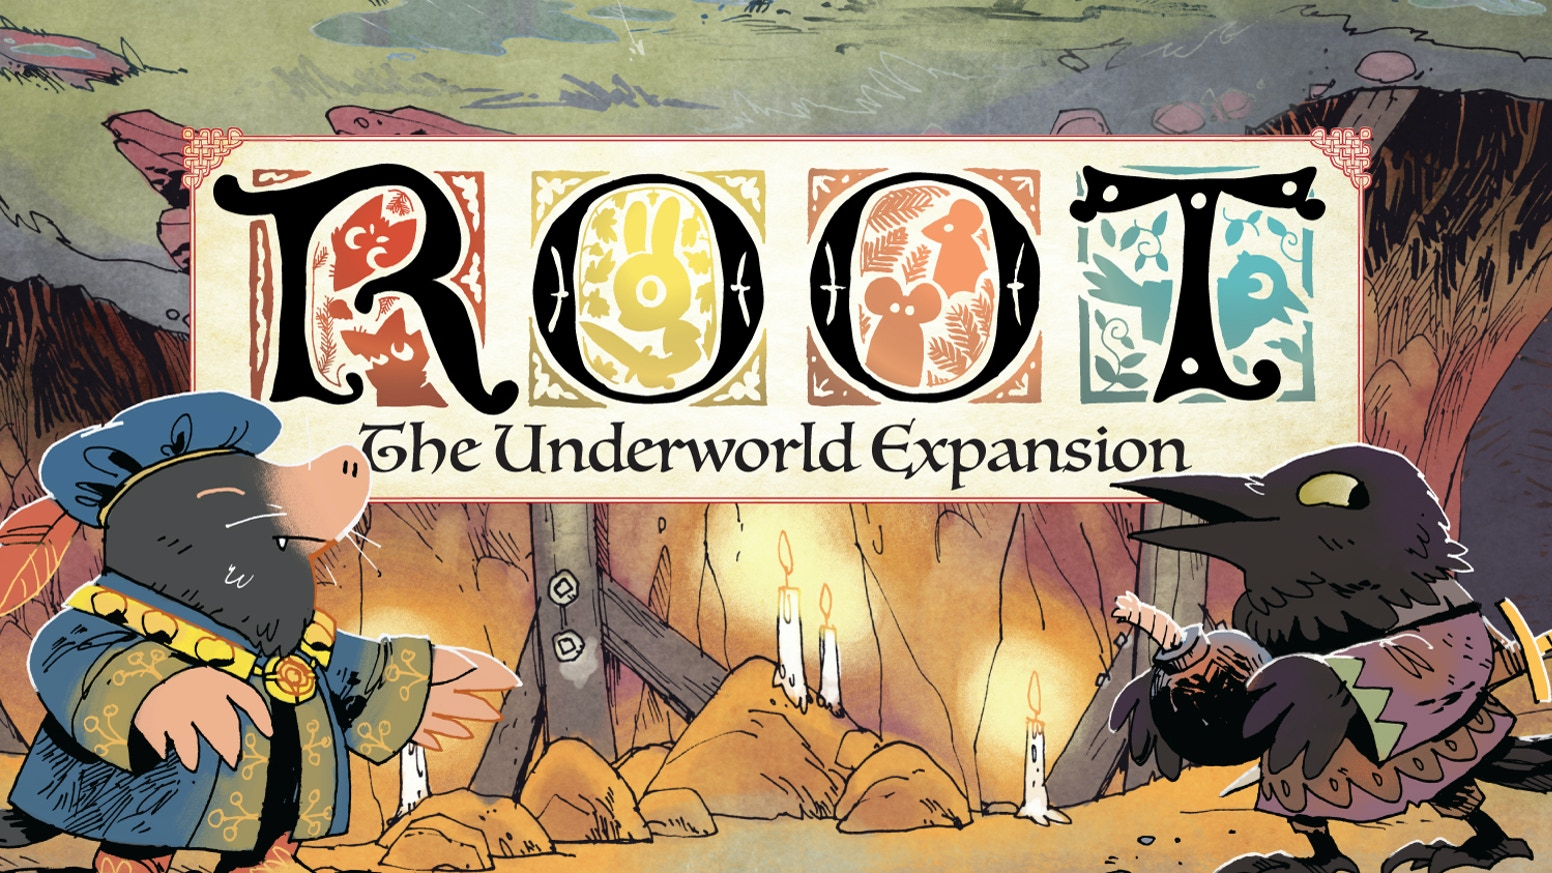 Root: The Underworld Expansion by Patrick Leder » Developer ... on internet map, technology map, photoshop map, us time map, wii map, contact us map,